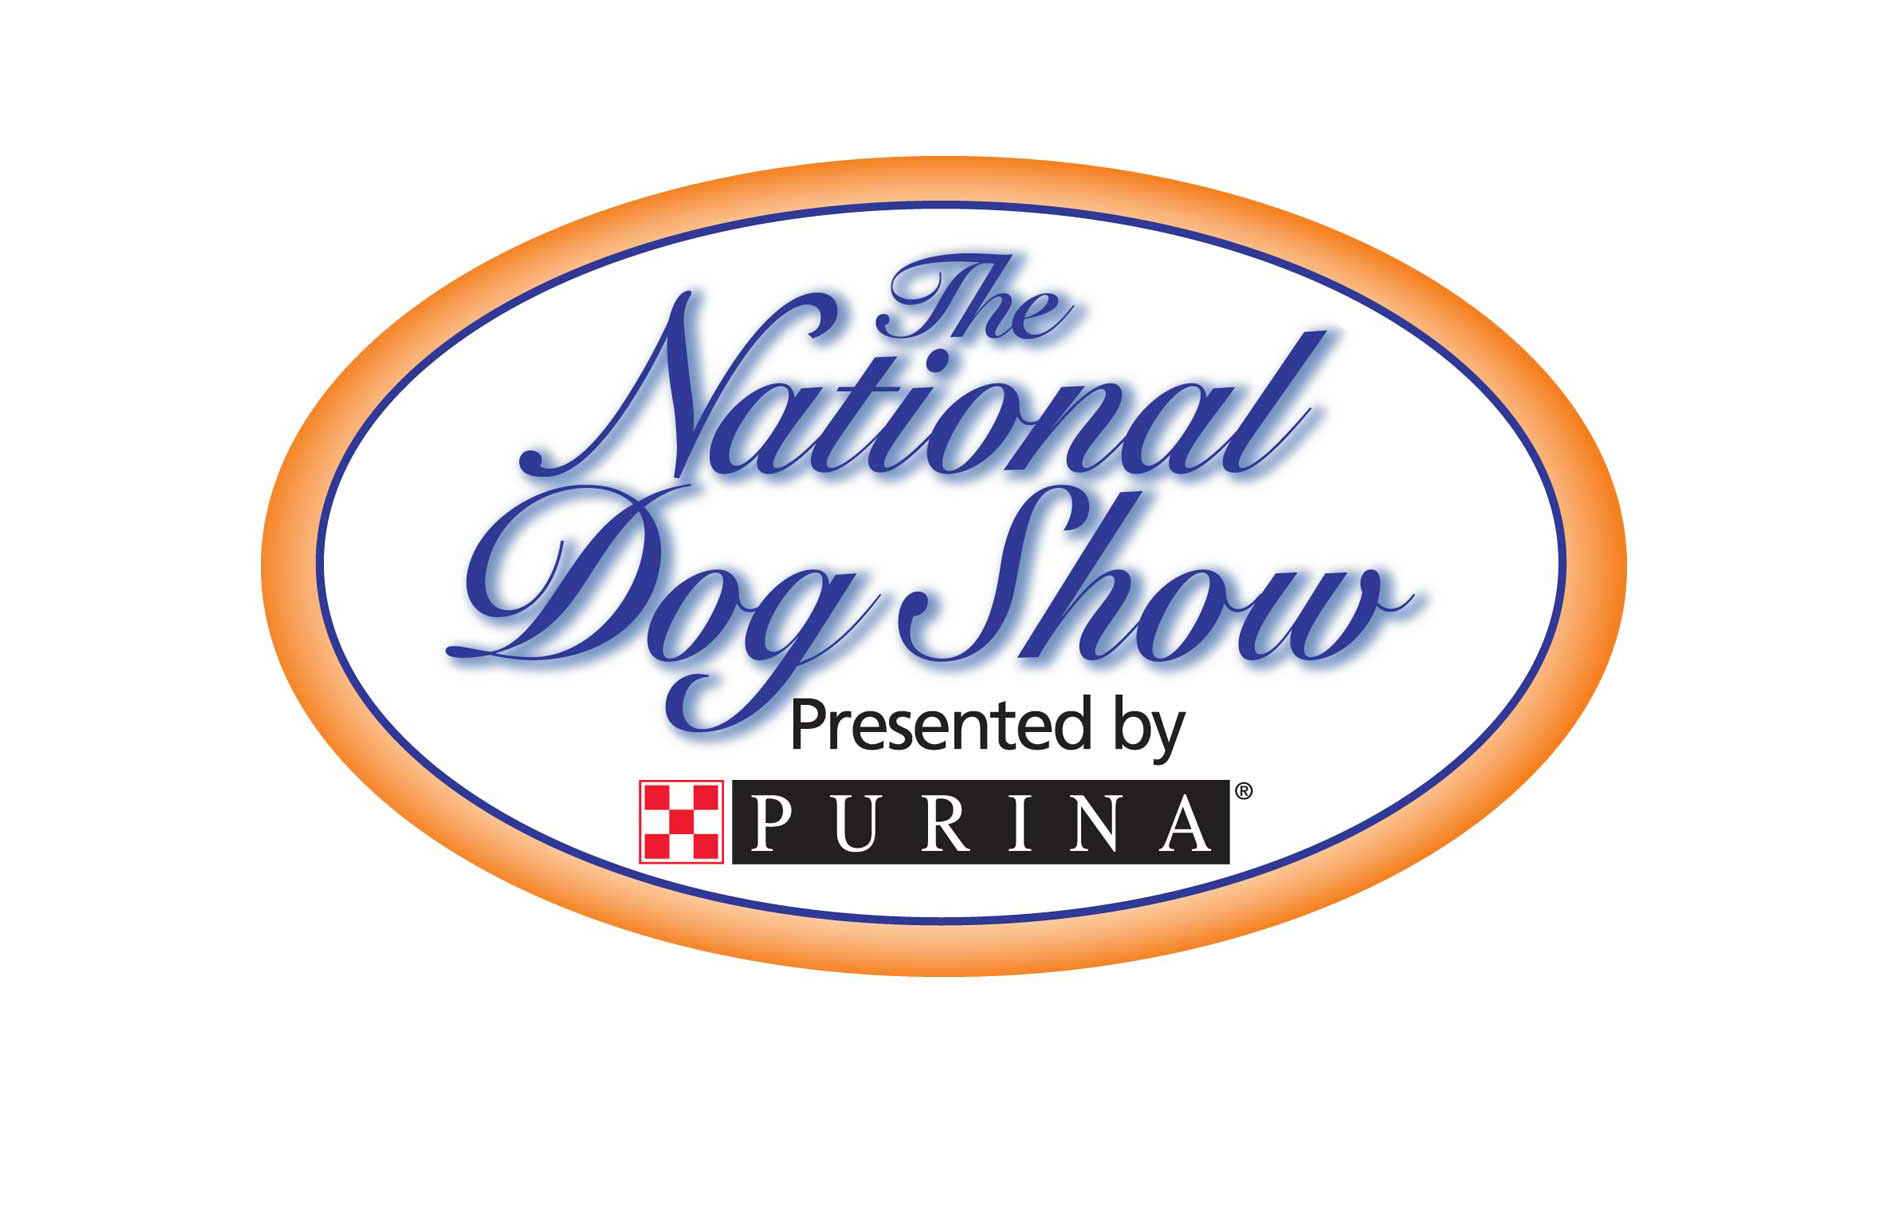 With more than 25 million viewers tuning in last year, The National Dog Show Presented by Purina® will air on NBC at noon (all time zones) on Thanksgiving Day. Watch as one of America's favorite dog breeds is crowned the 2019 champion.